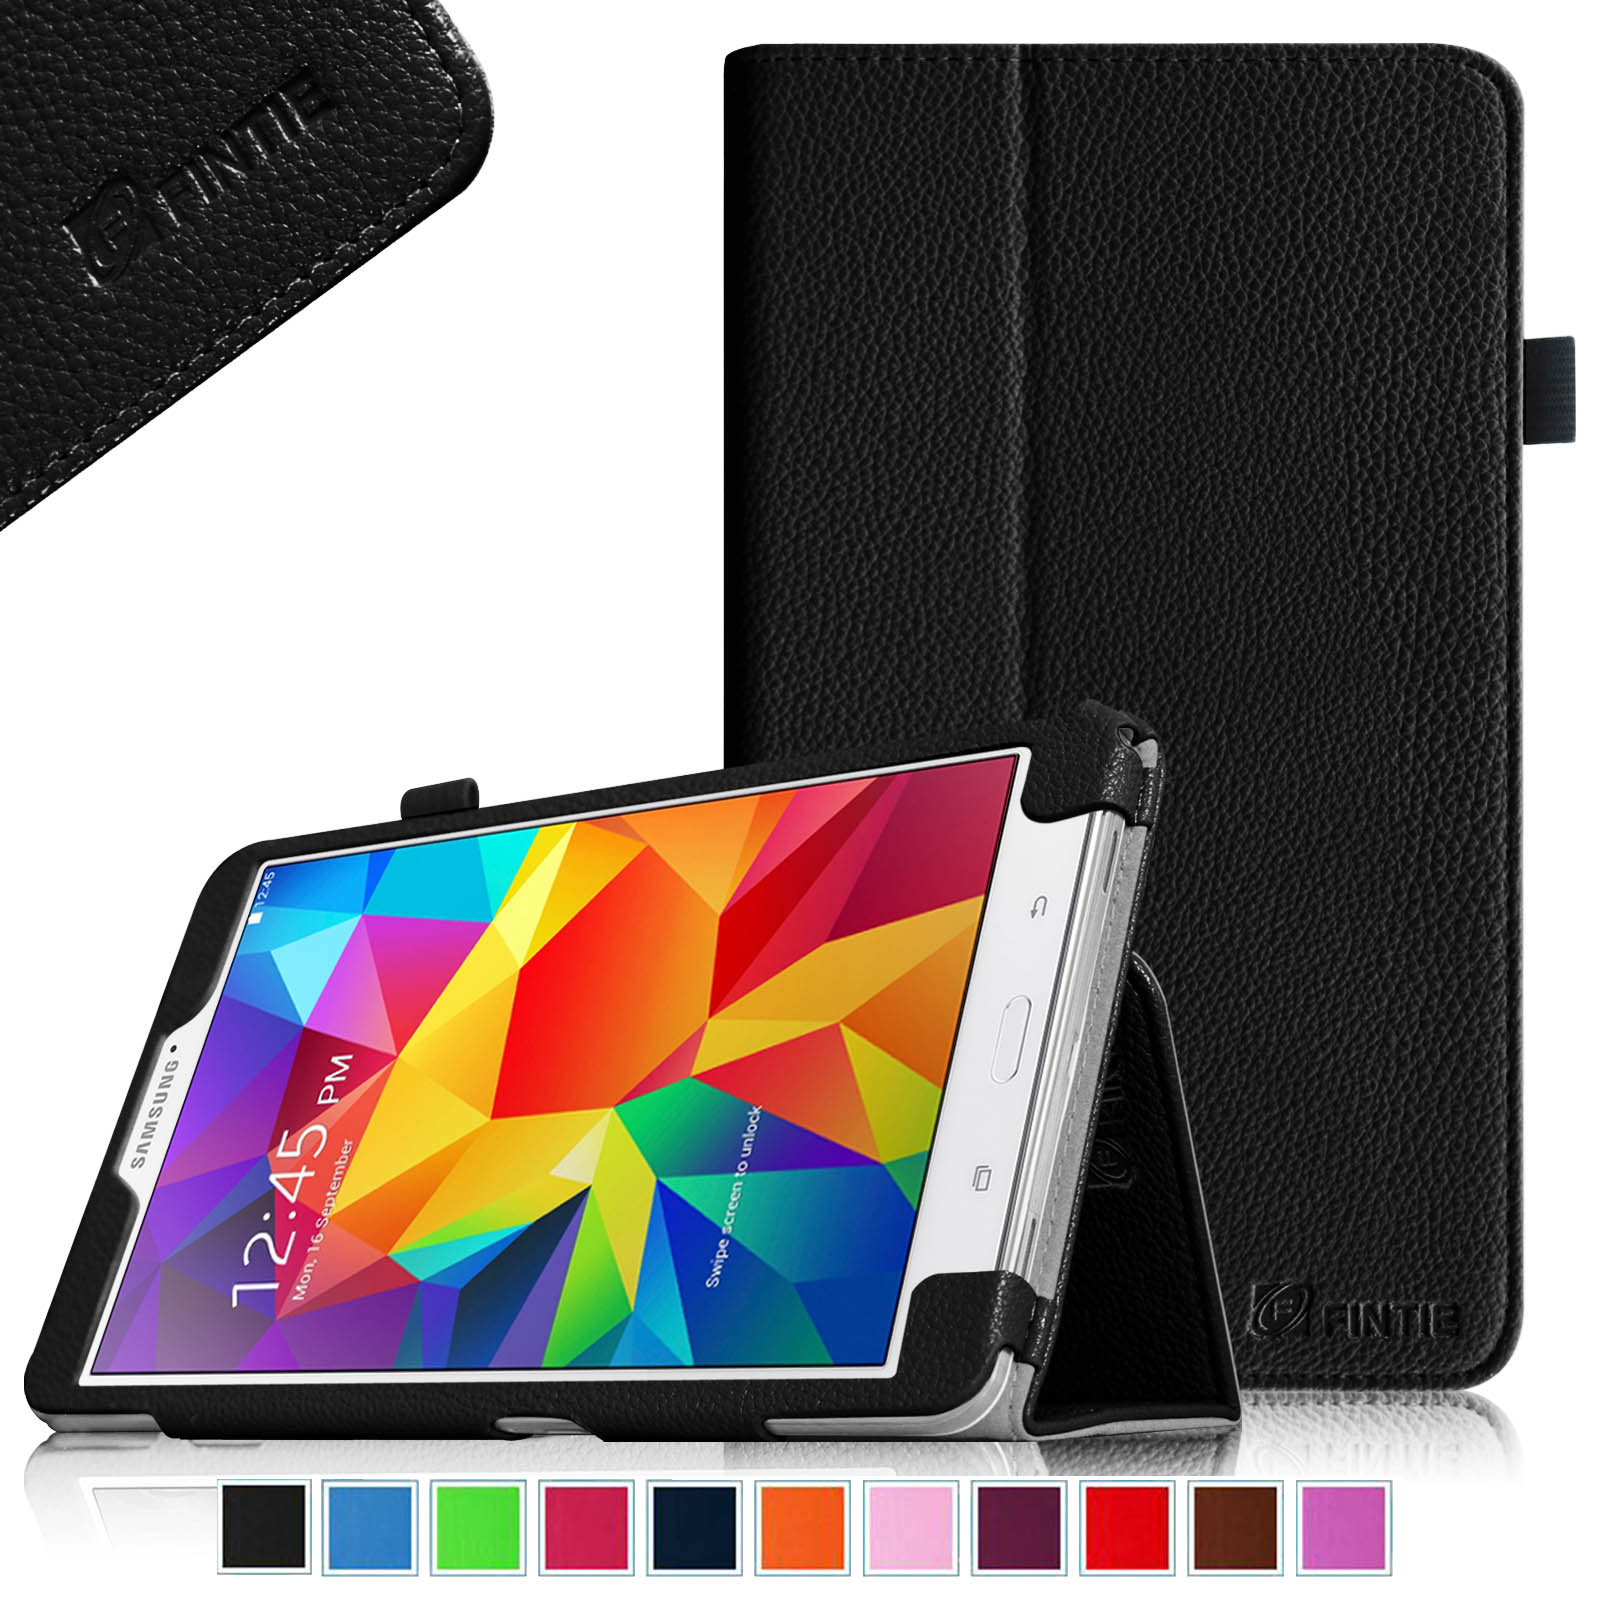 Fintie Case for Samsung Galaxy Tab 4 7.0 - Slim Fit Premium Vegan Leather Folio Stand Cover, Black